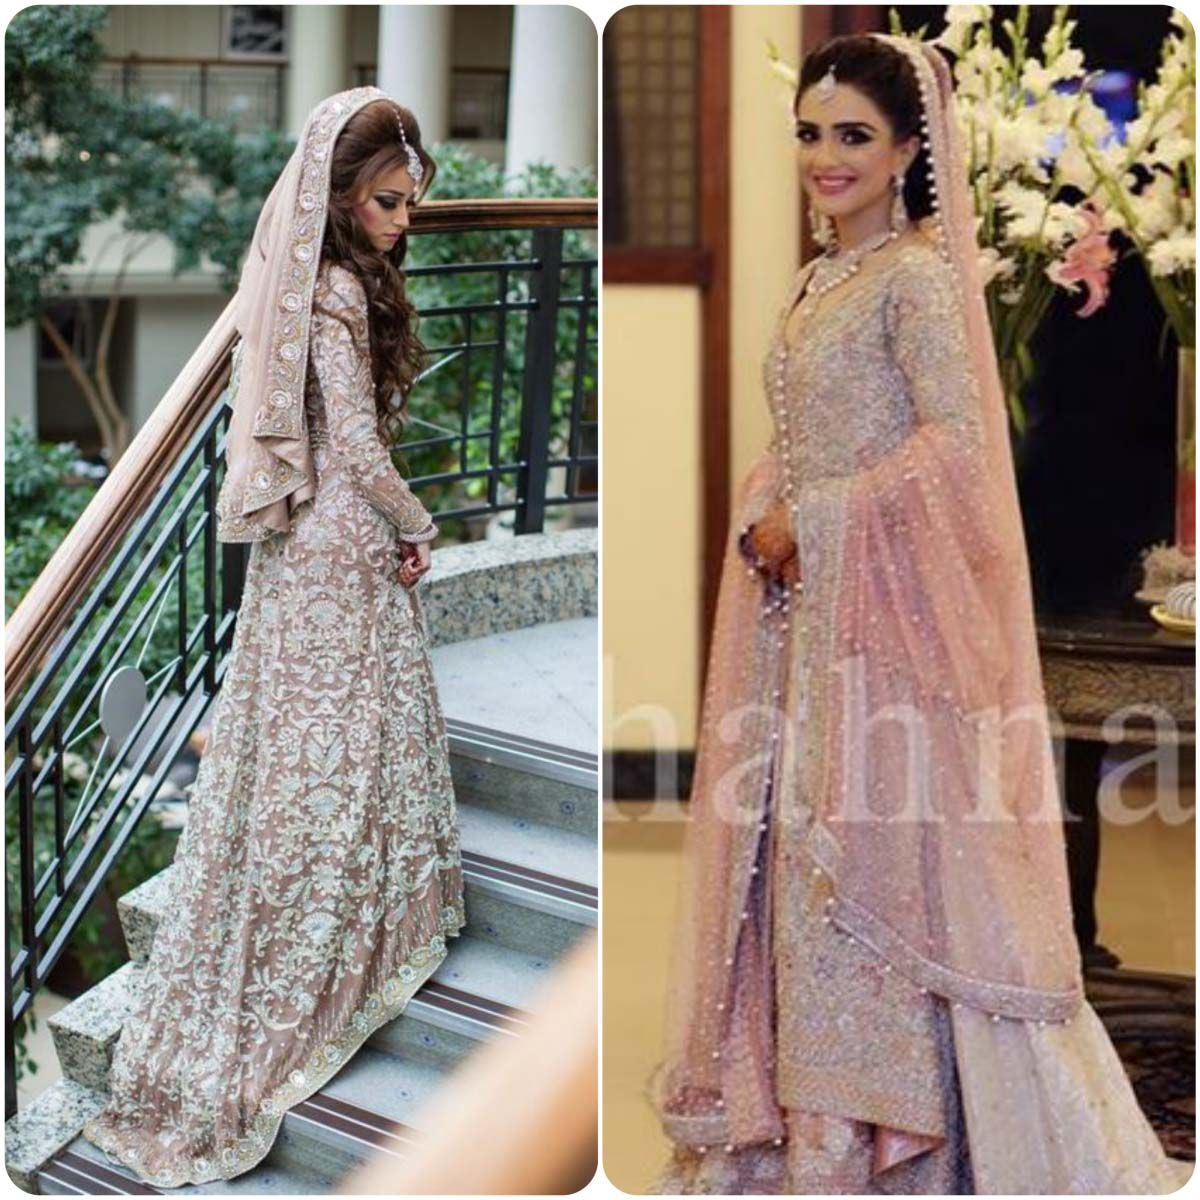 Wedding Dresses 2017 Ideas : Also shows their latest bridal walima dresses trends for wedding